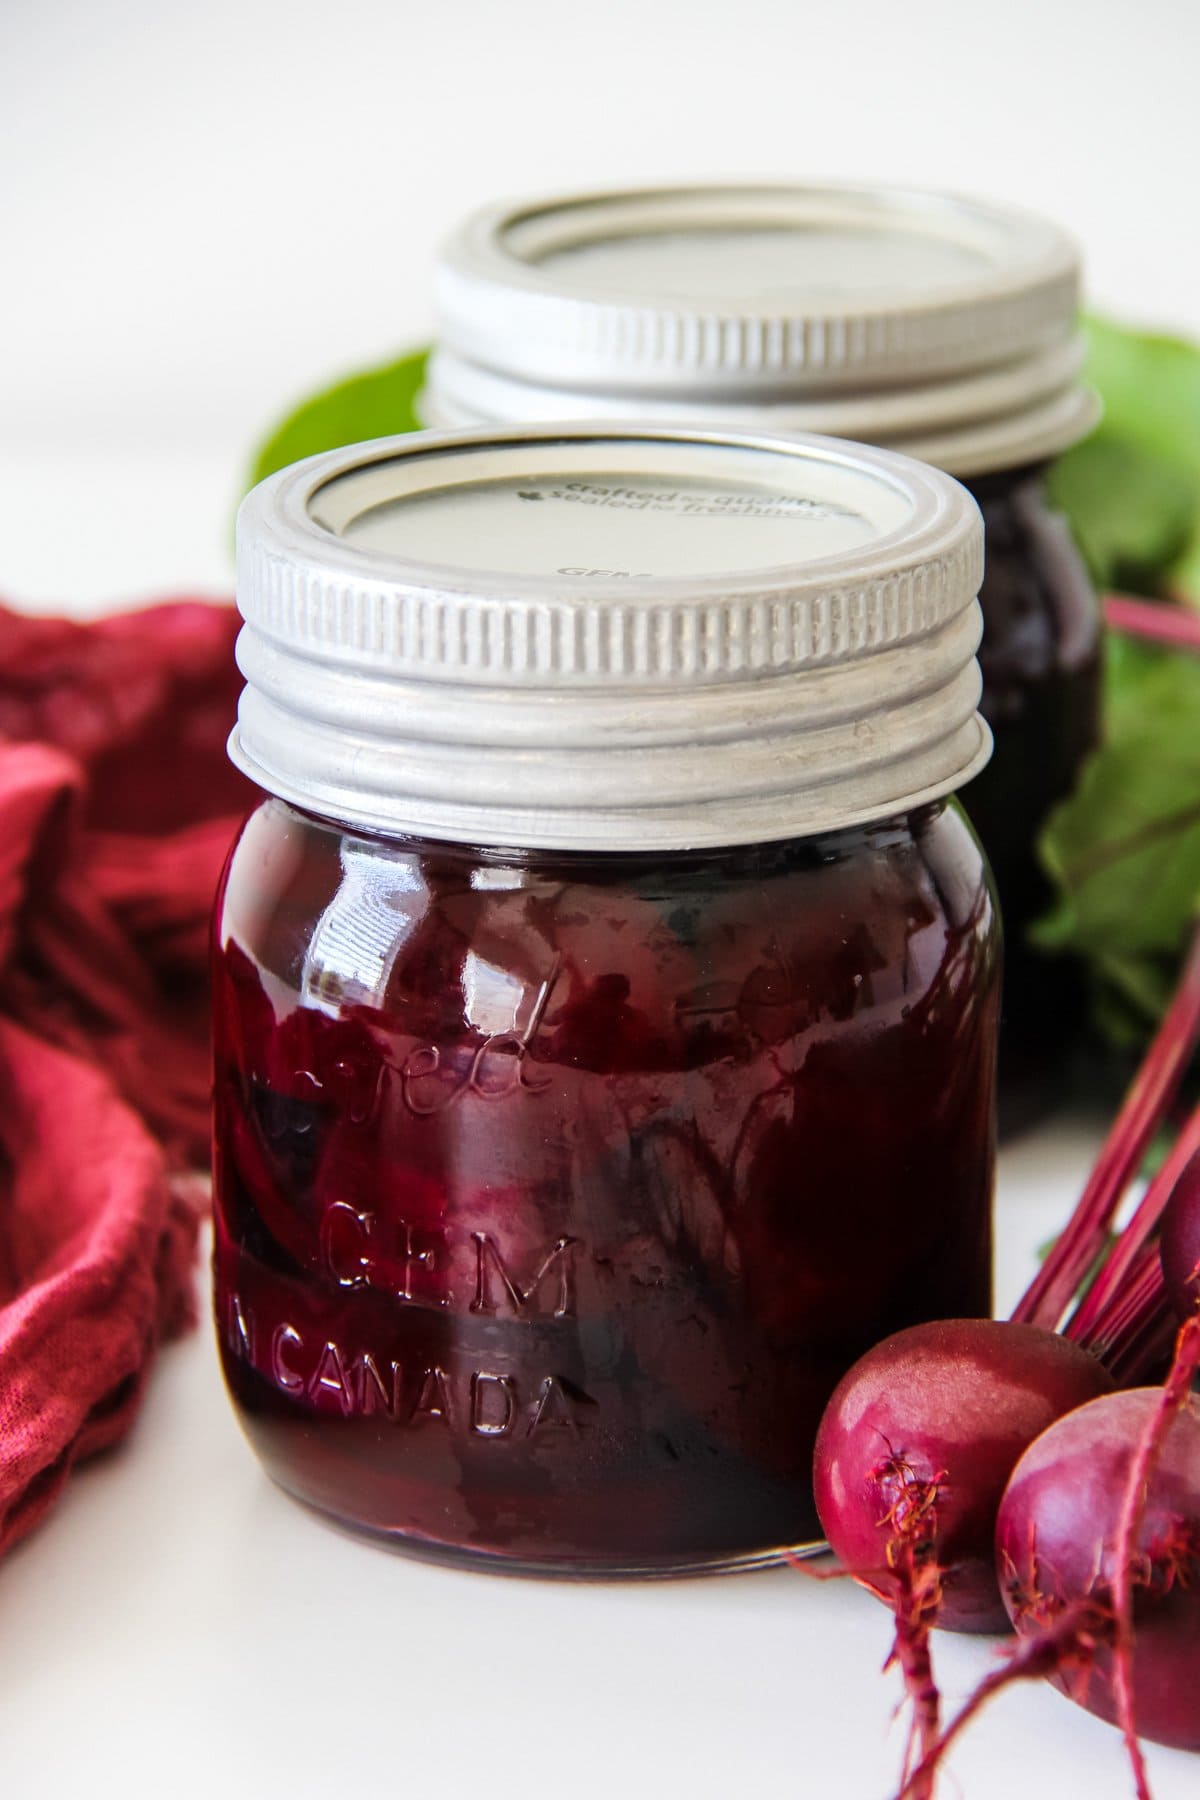 two jars of Pickled Beets. in the background are fresh beets with green leaves and a maroon coloured cloth.